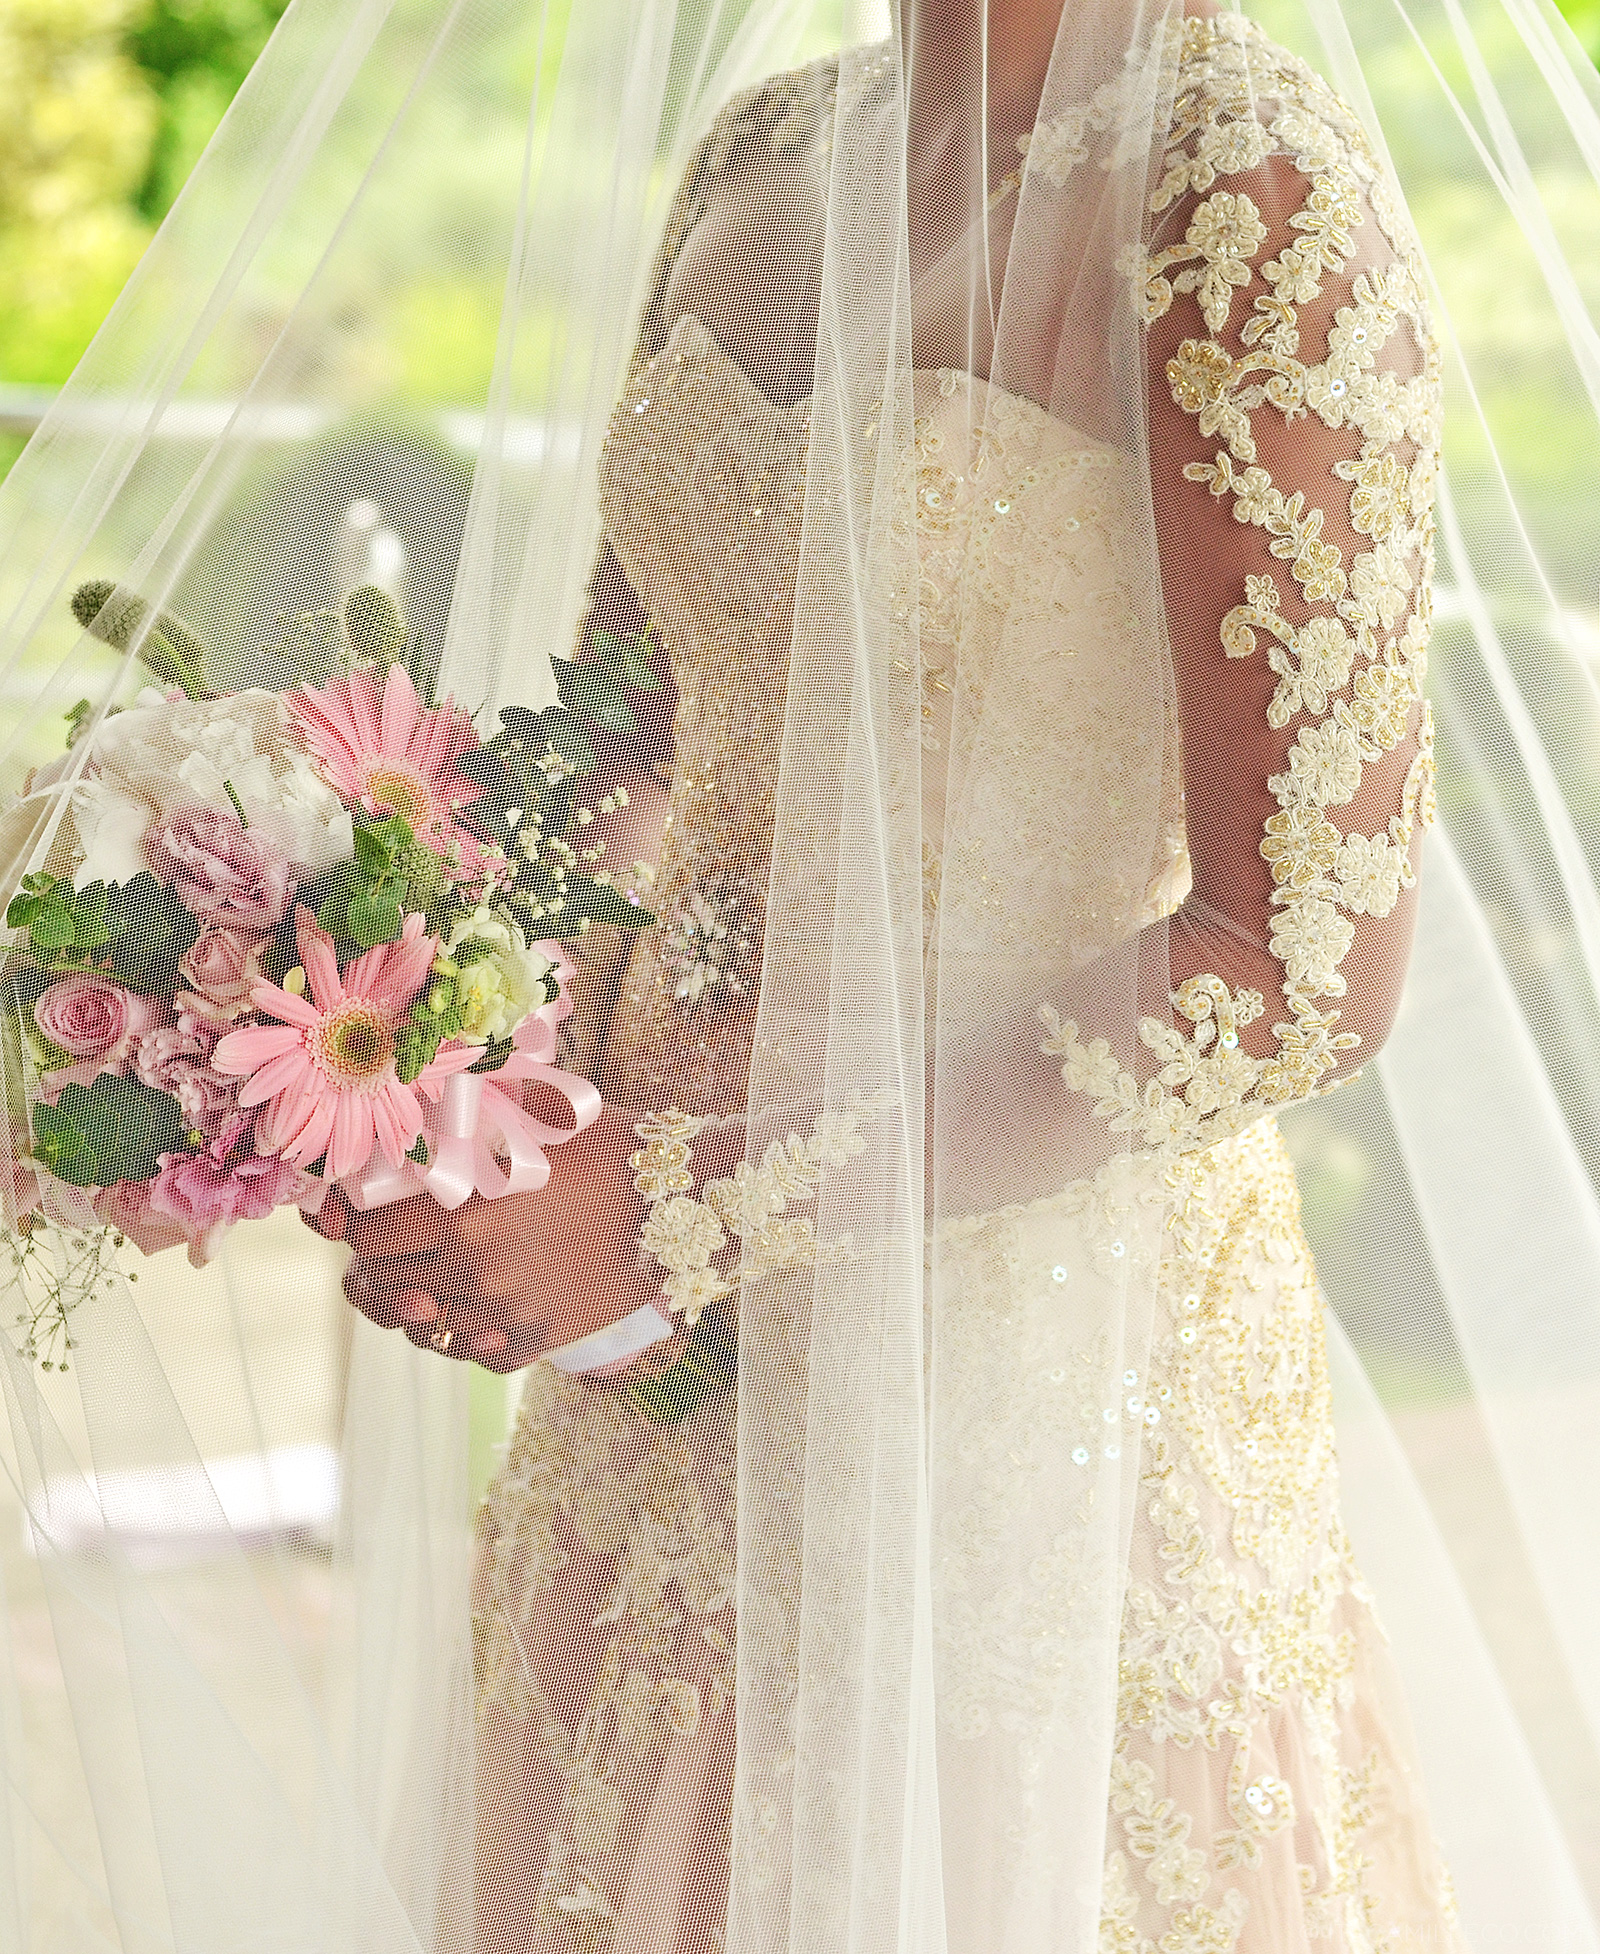 Wedding Entourage Gowns: Lace Bridal Gown And Entourage By Camille Co